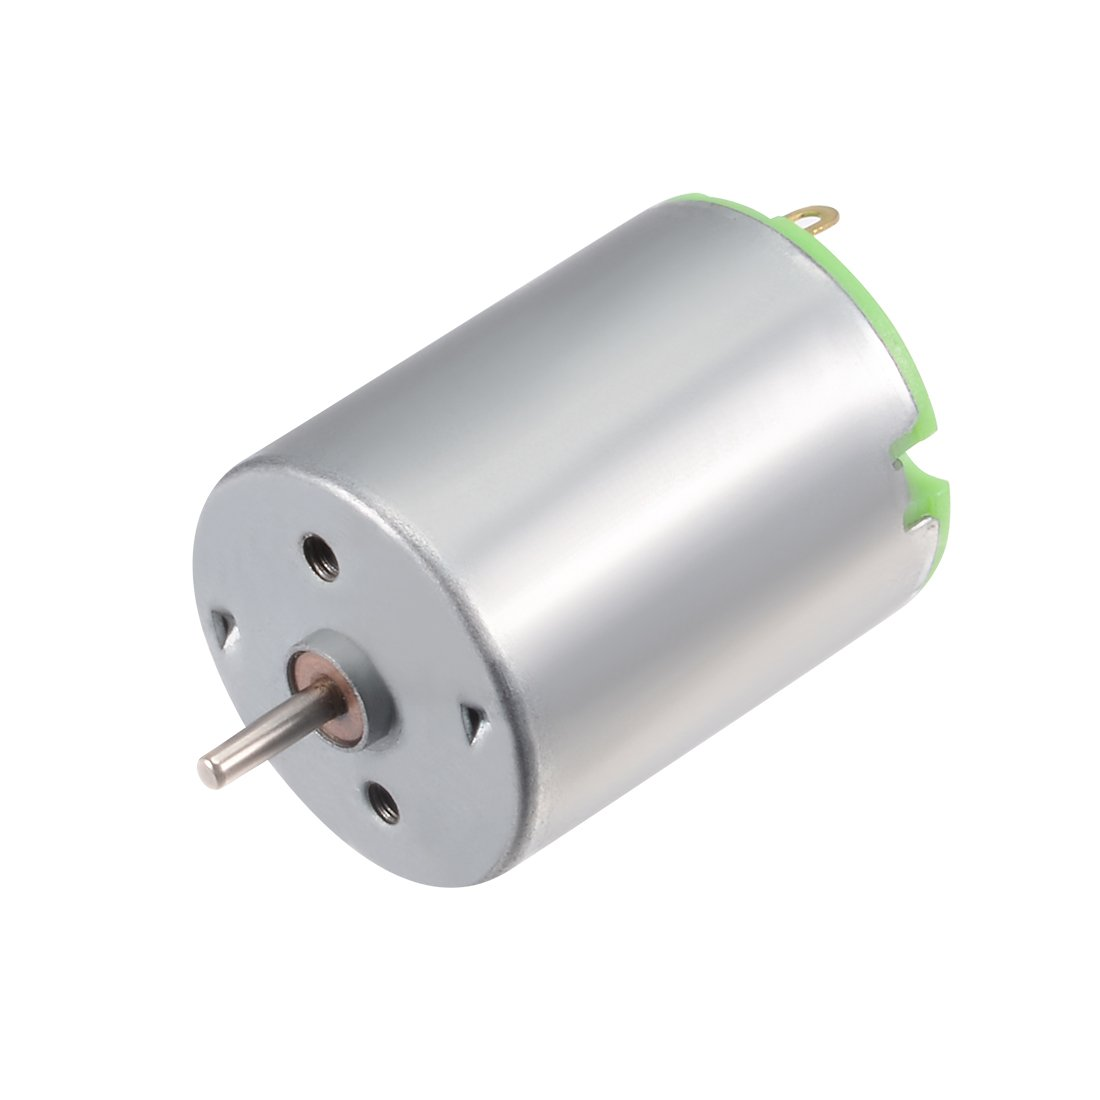 uxcell Small Motor DC 12V 6000 RPM High Speed Motor for DIY Hobby Toy Cars Remote Control